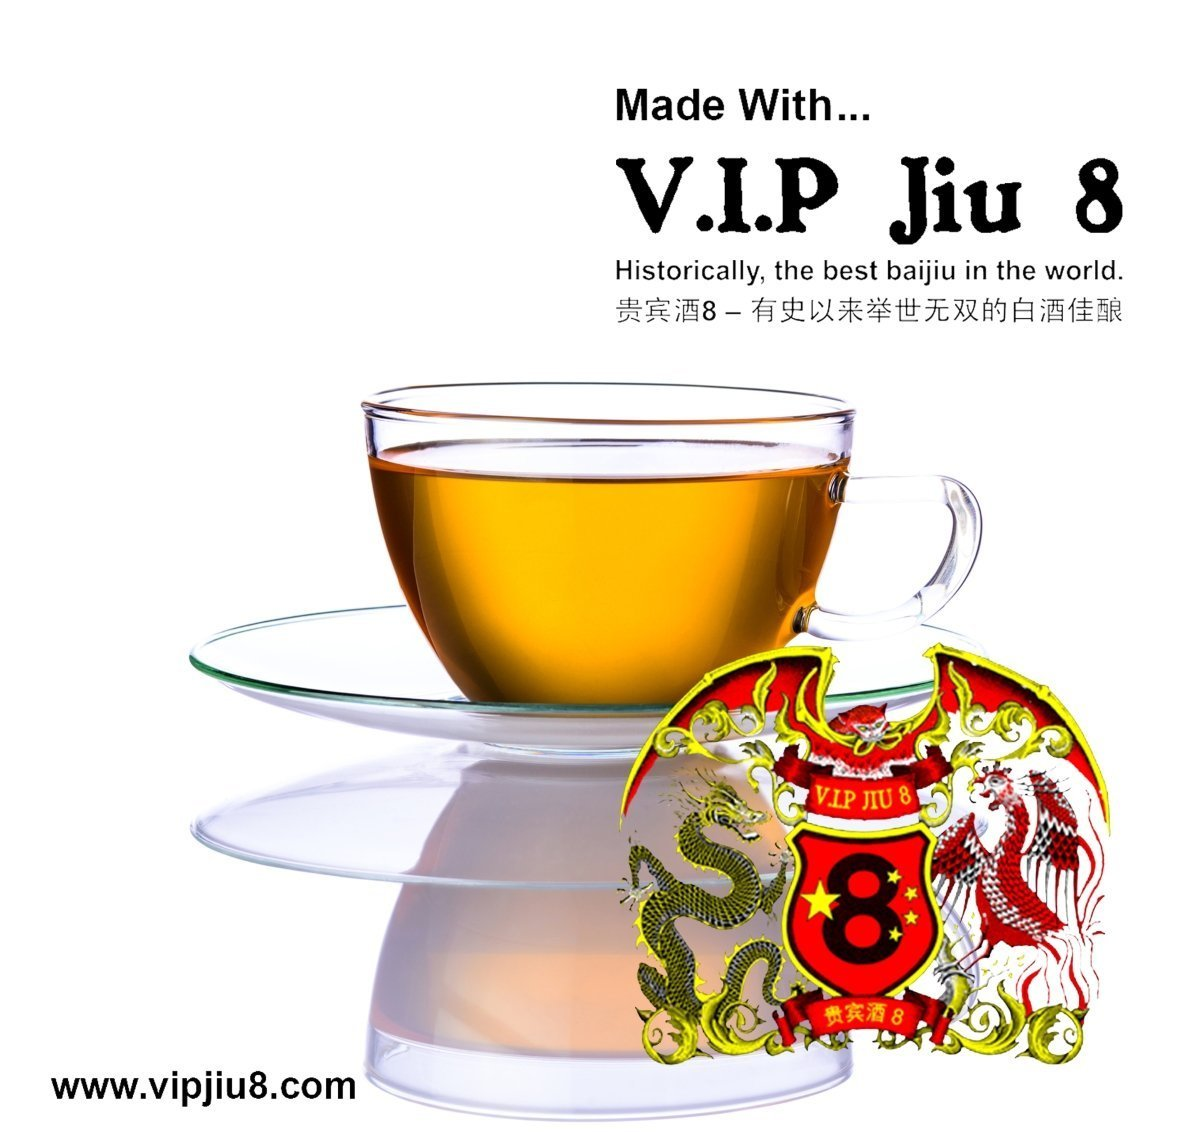 Yellow Tea Infused Recipes With V.I.P Jiu 8: Baijiu Alcohol